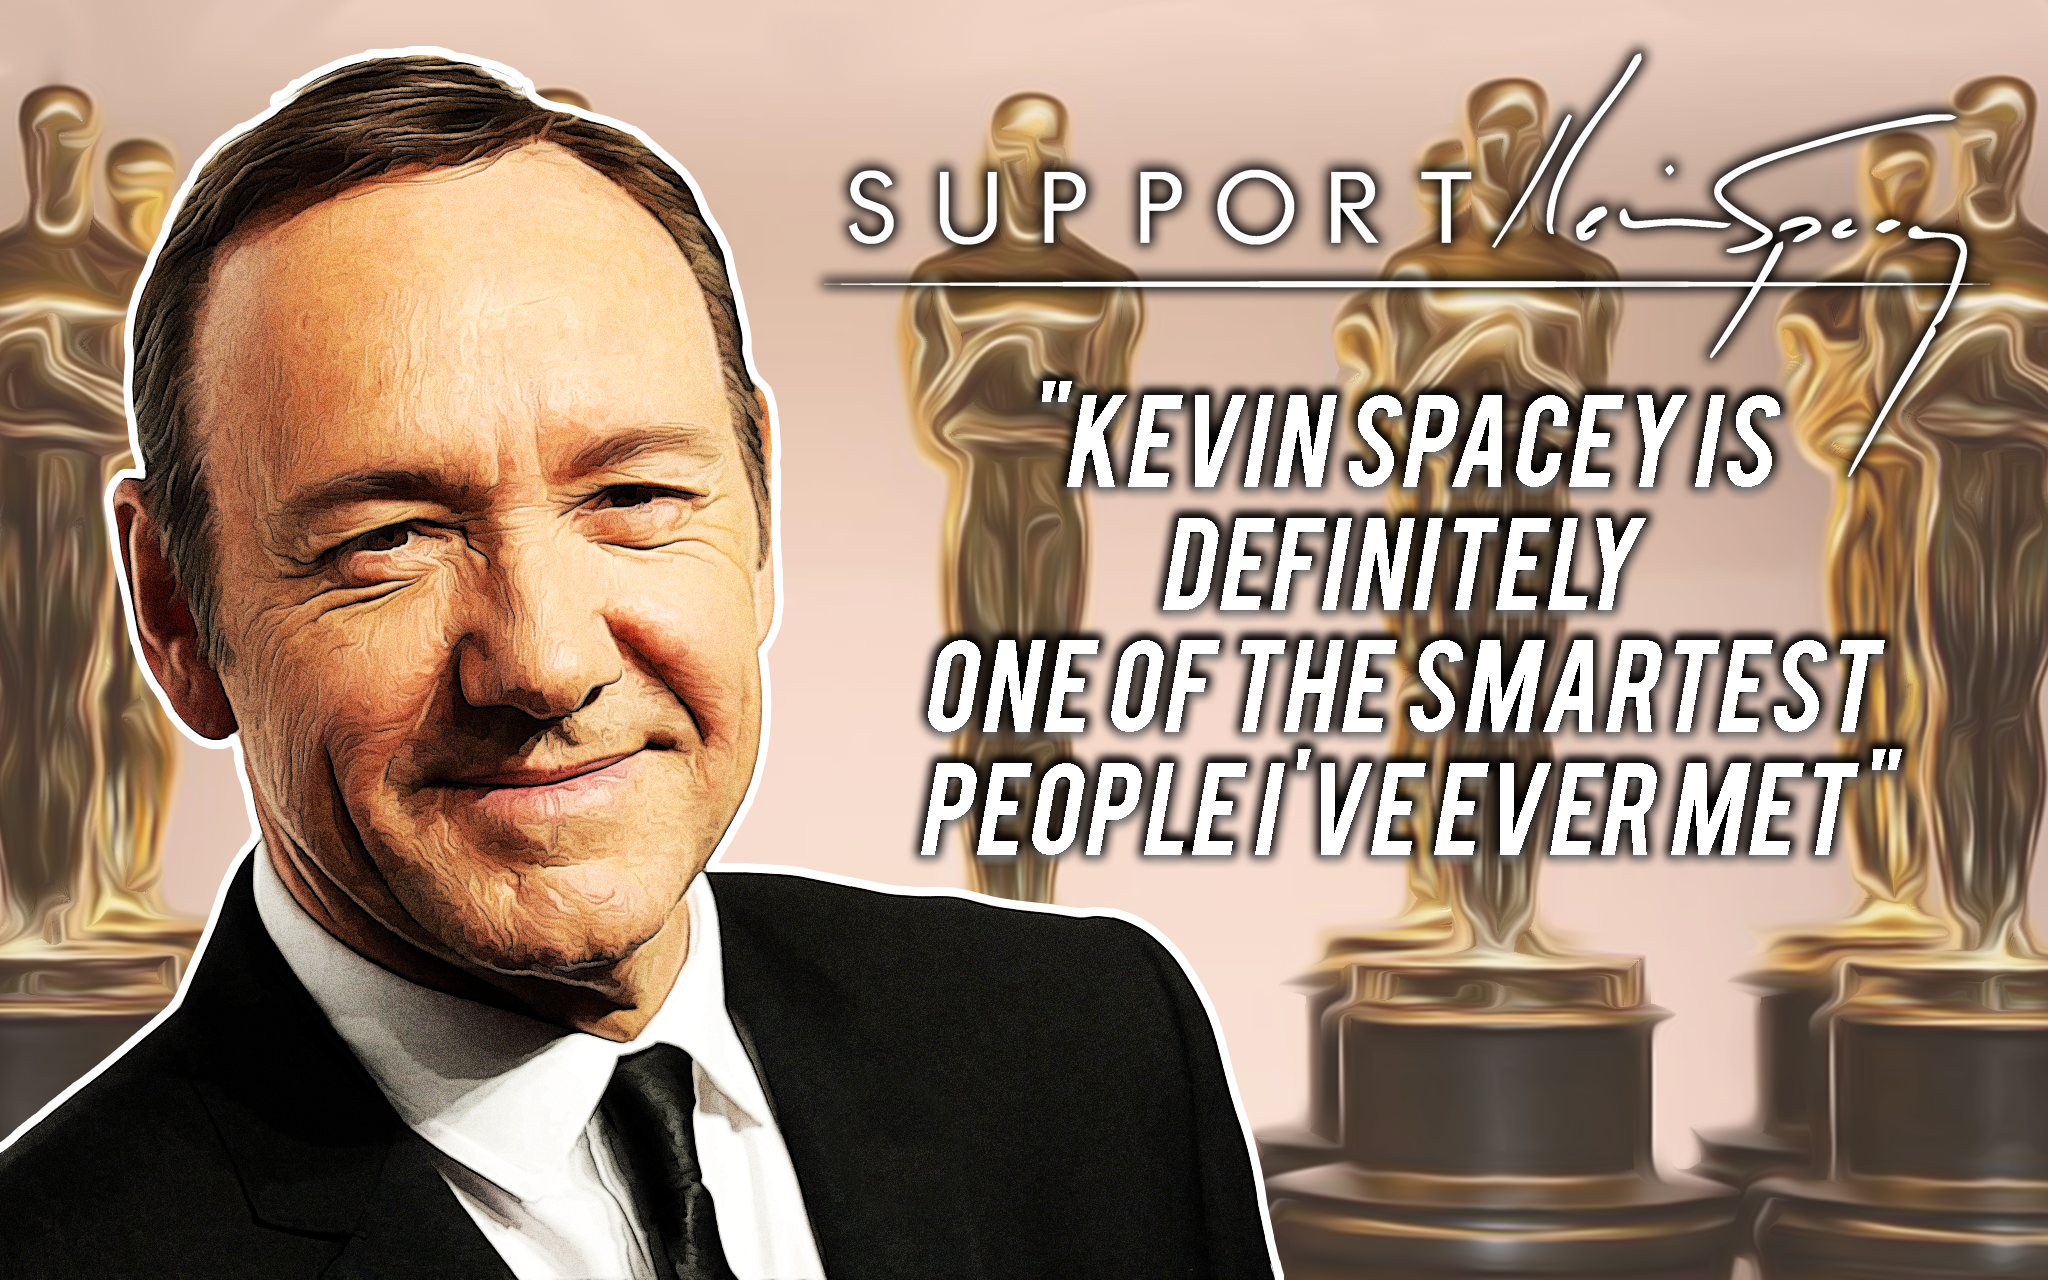 kevin spacey supportkevinspacey.com